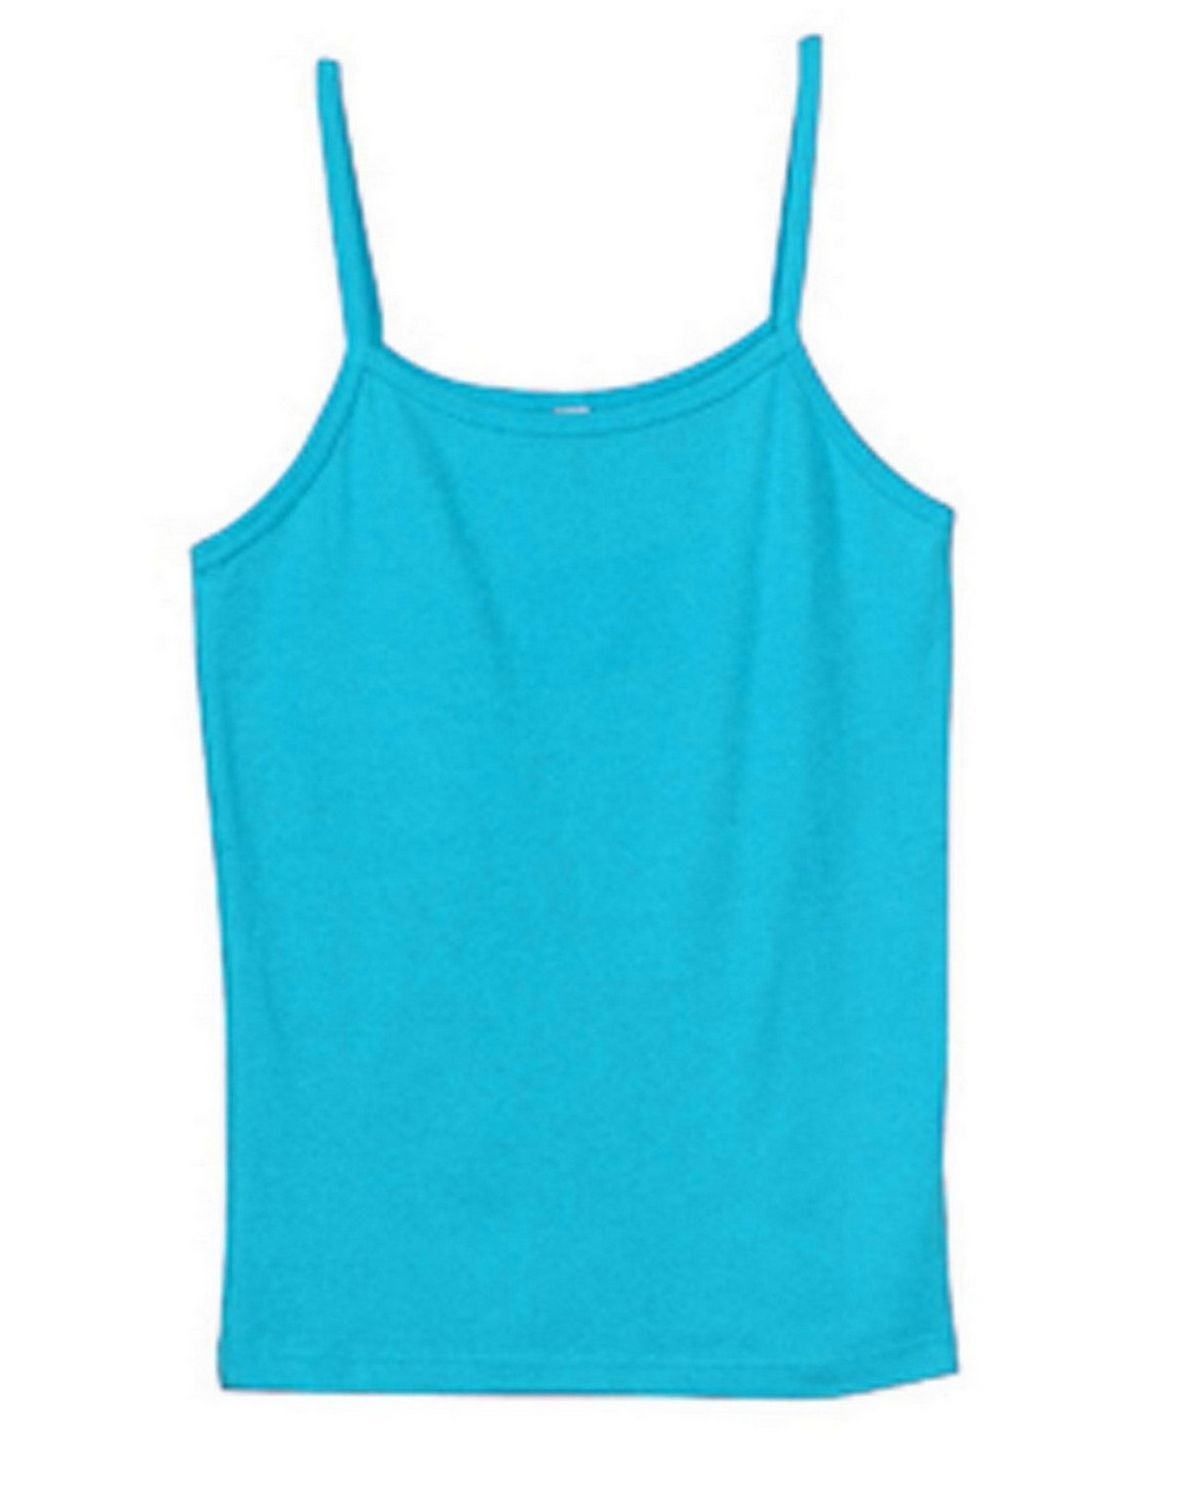 Bella + Canvas 1011 Ladies Stretch Rib Spaghetti Strap Tank - Turquoise - XL 1011